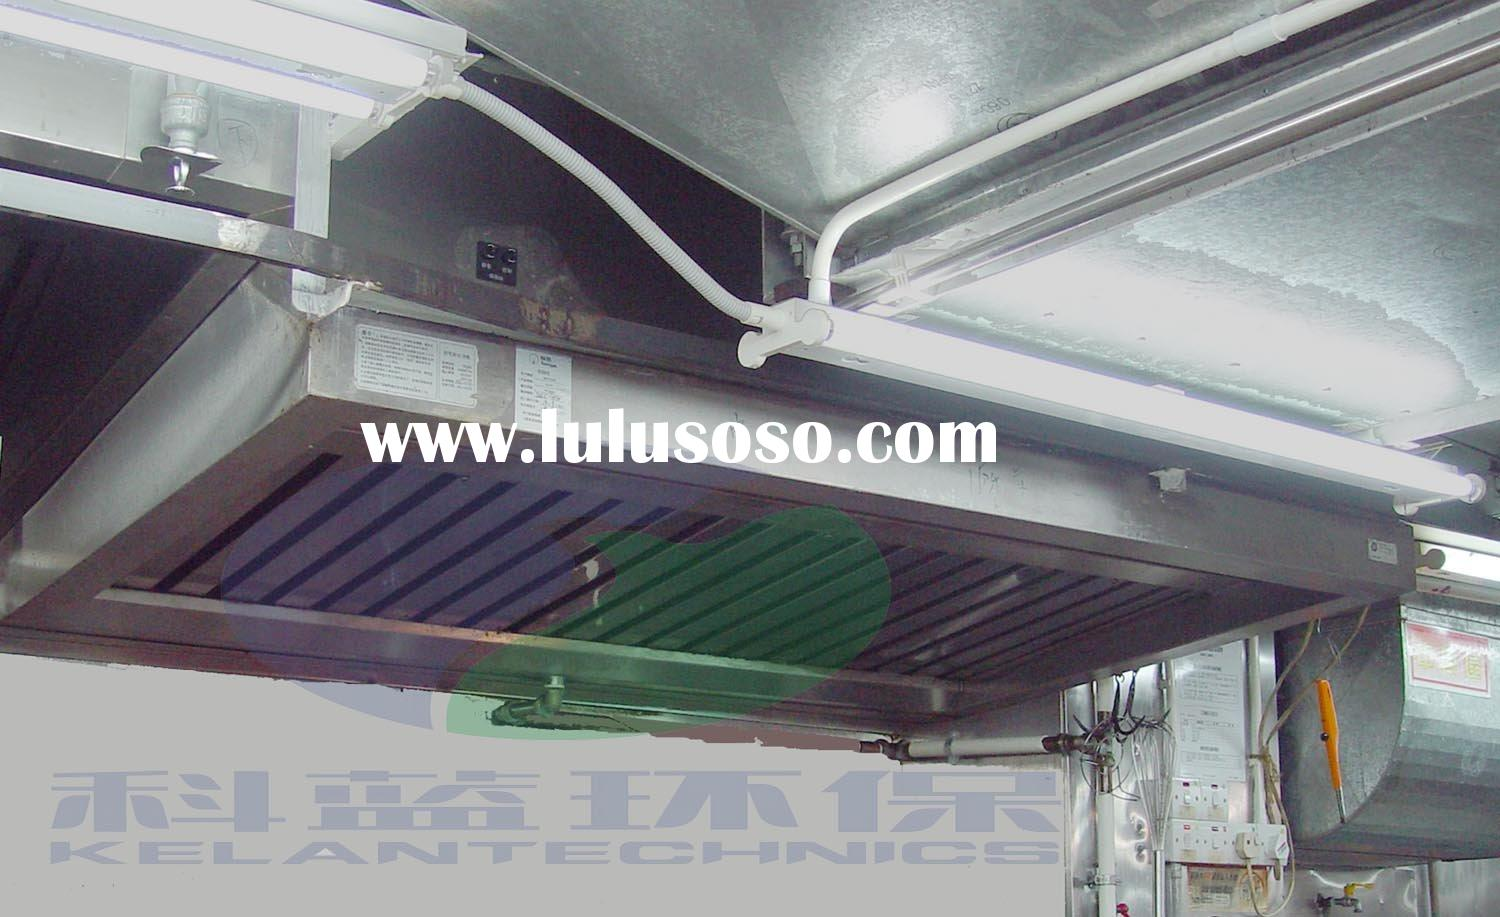 Ss Commercial : kitchen hood stainless steel, kitchen hood stainless steel ...